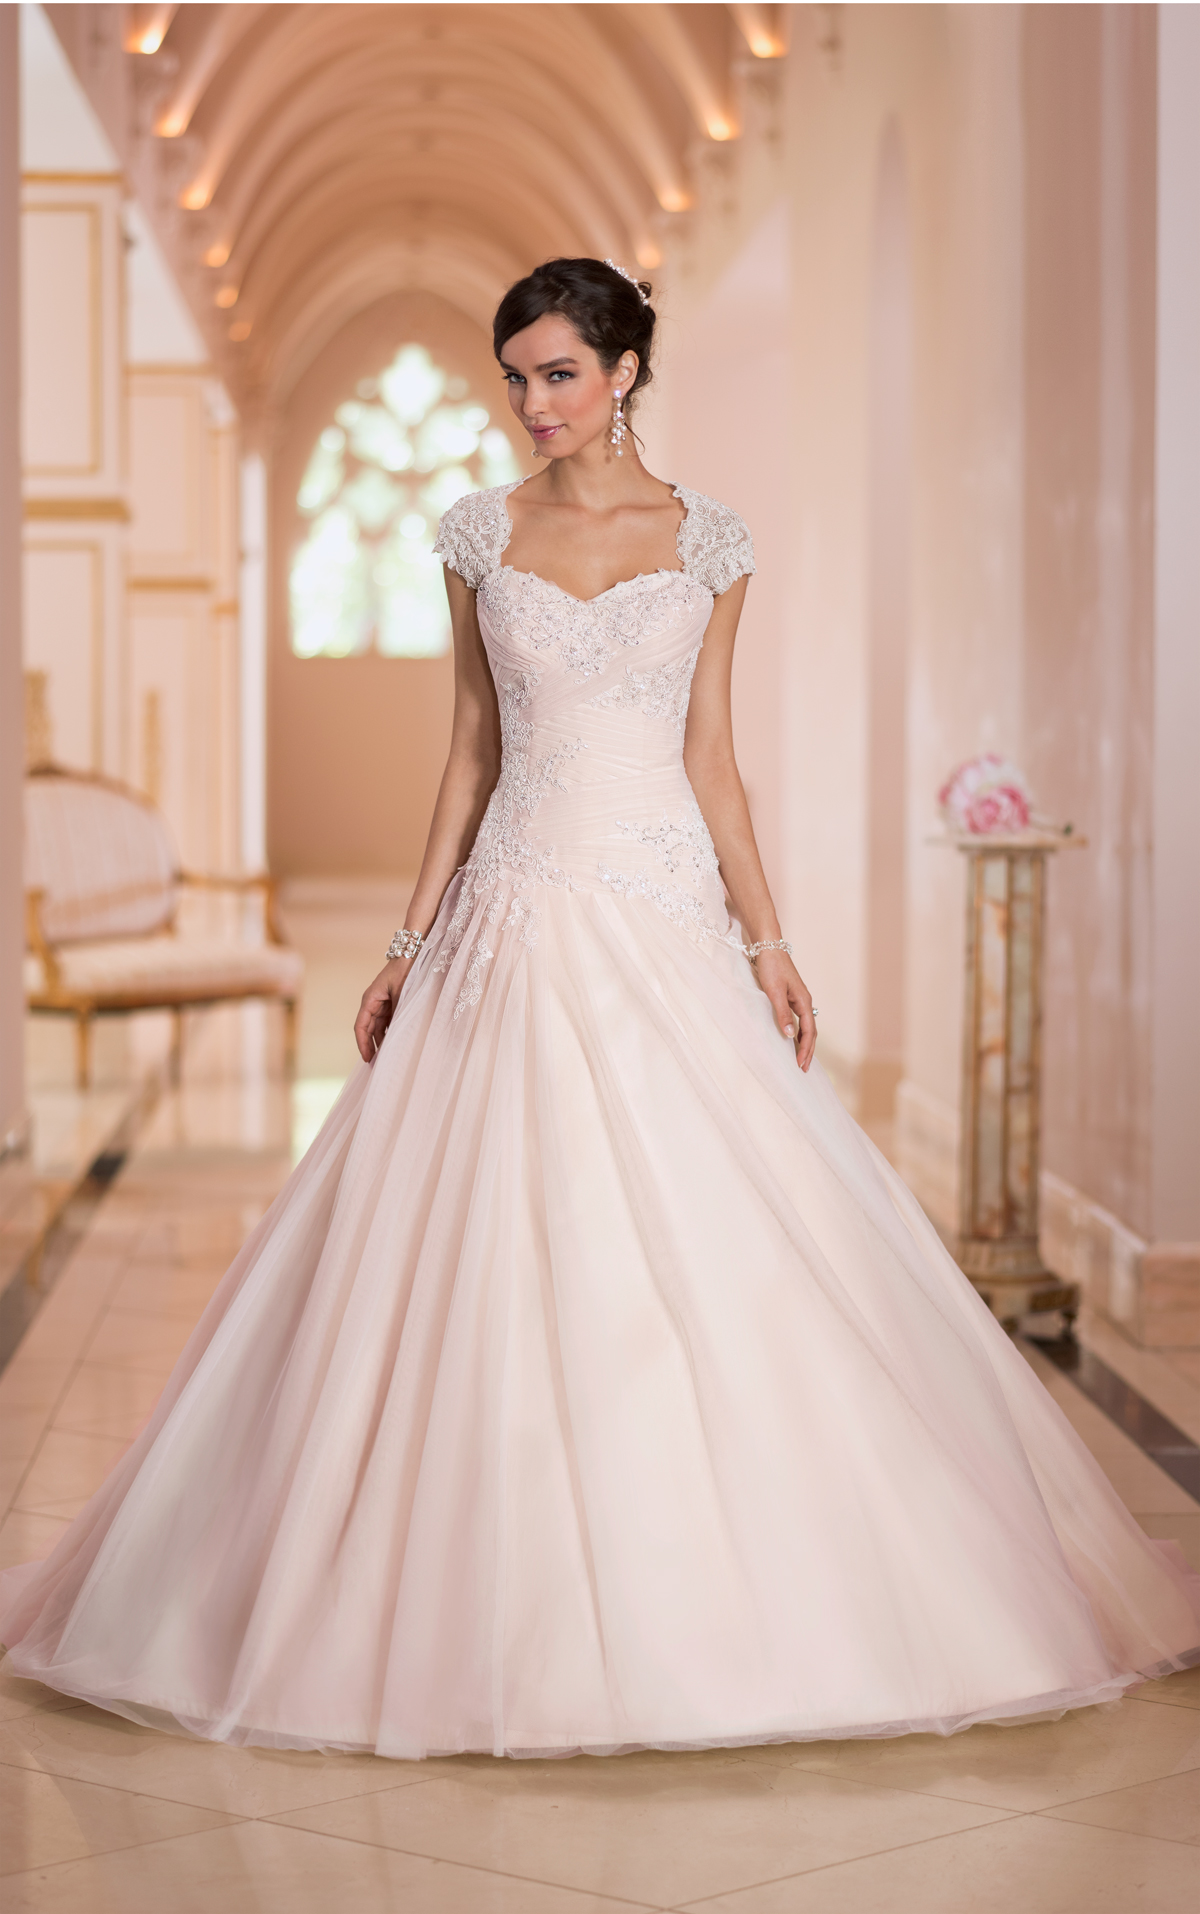 stella-york-wedding-dresses-2014-4-01152014